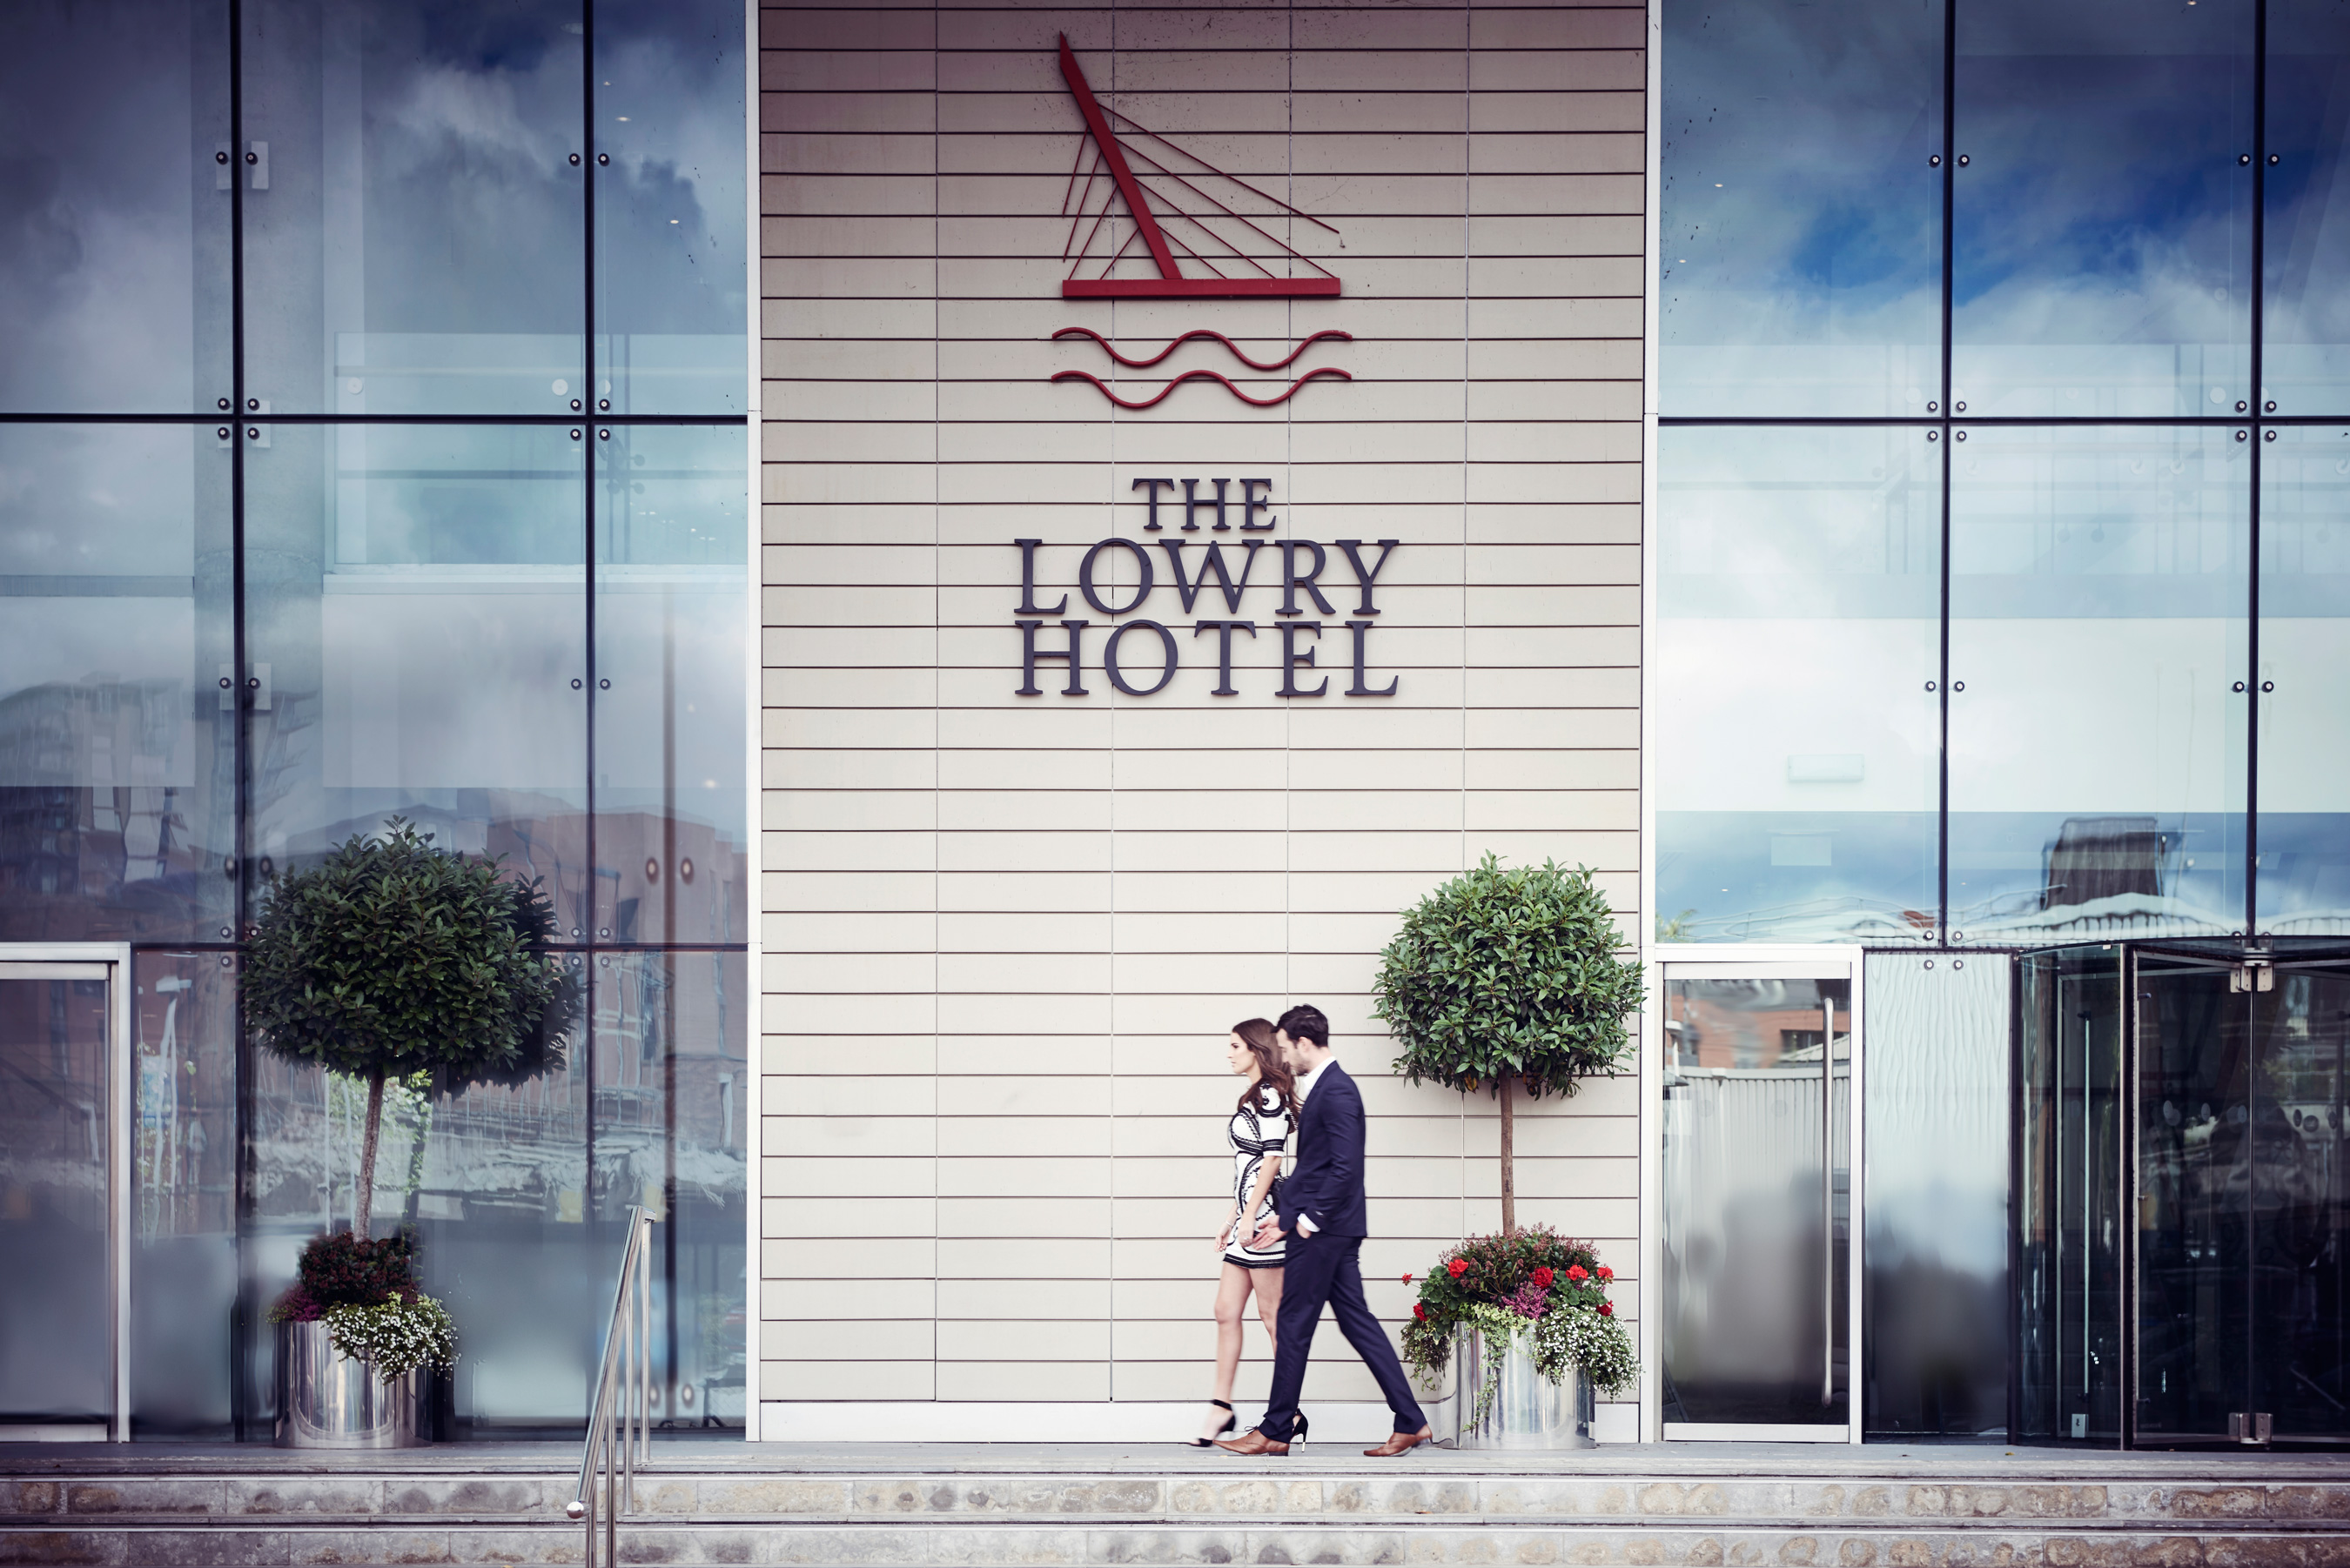 Matt-Stansfield-Lifestyle-photographer-advertising-Lowry-Hotel-4754